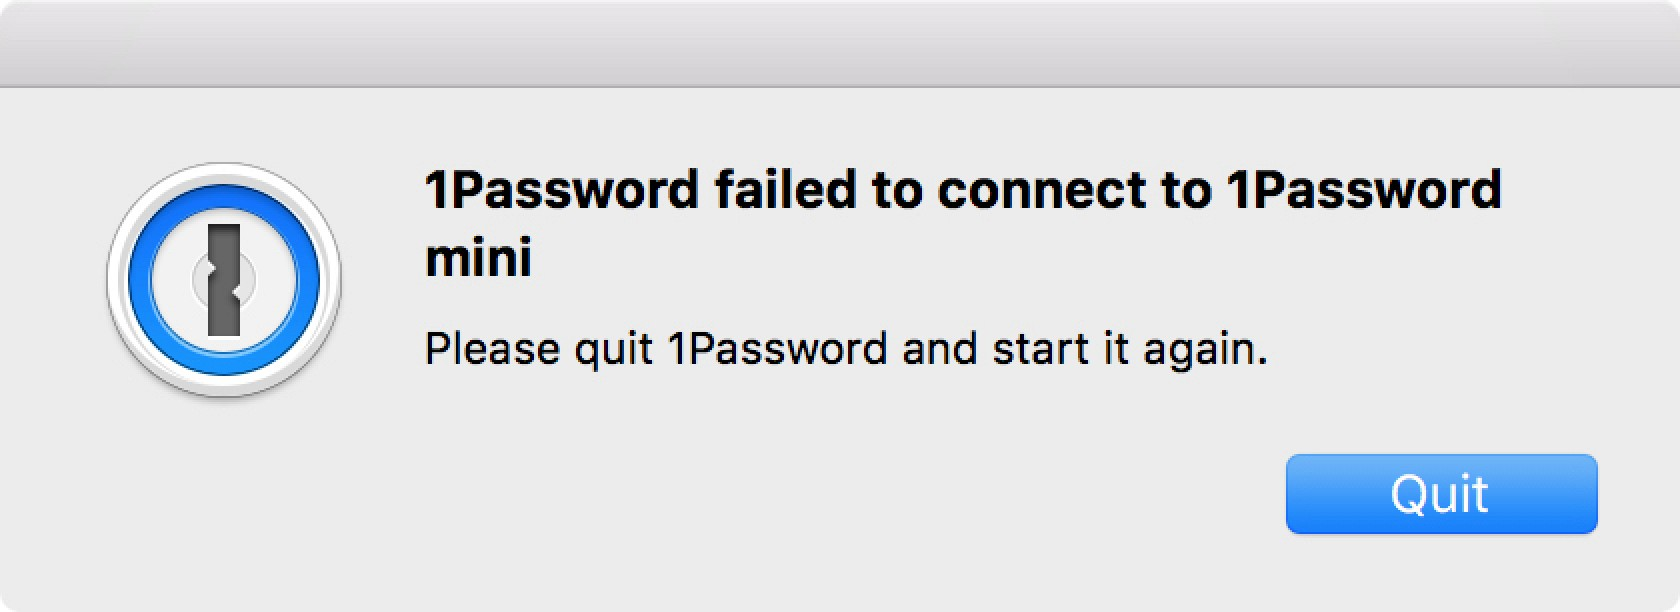 Expiring Developer Certificates Causing Some Mac Apps to Refuse to